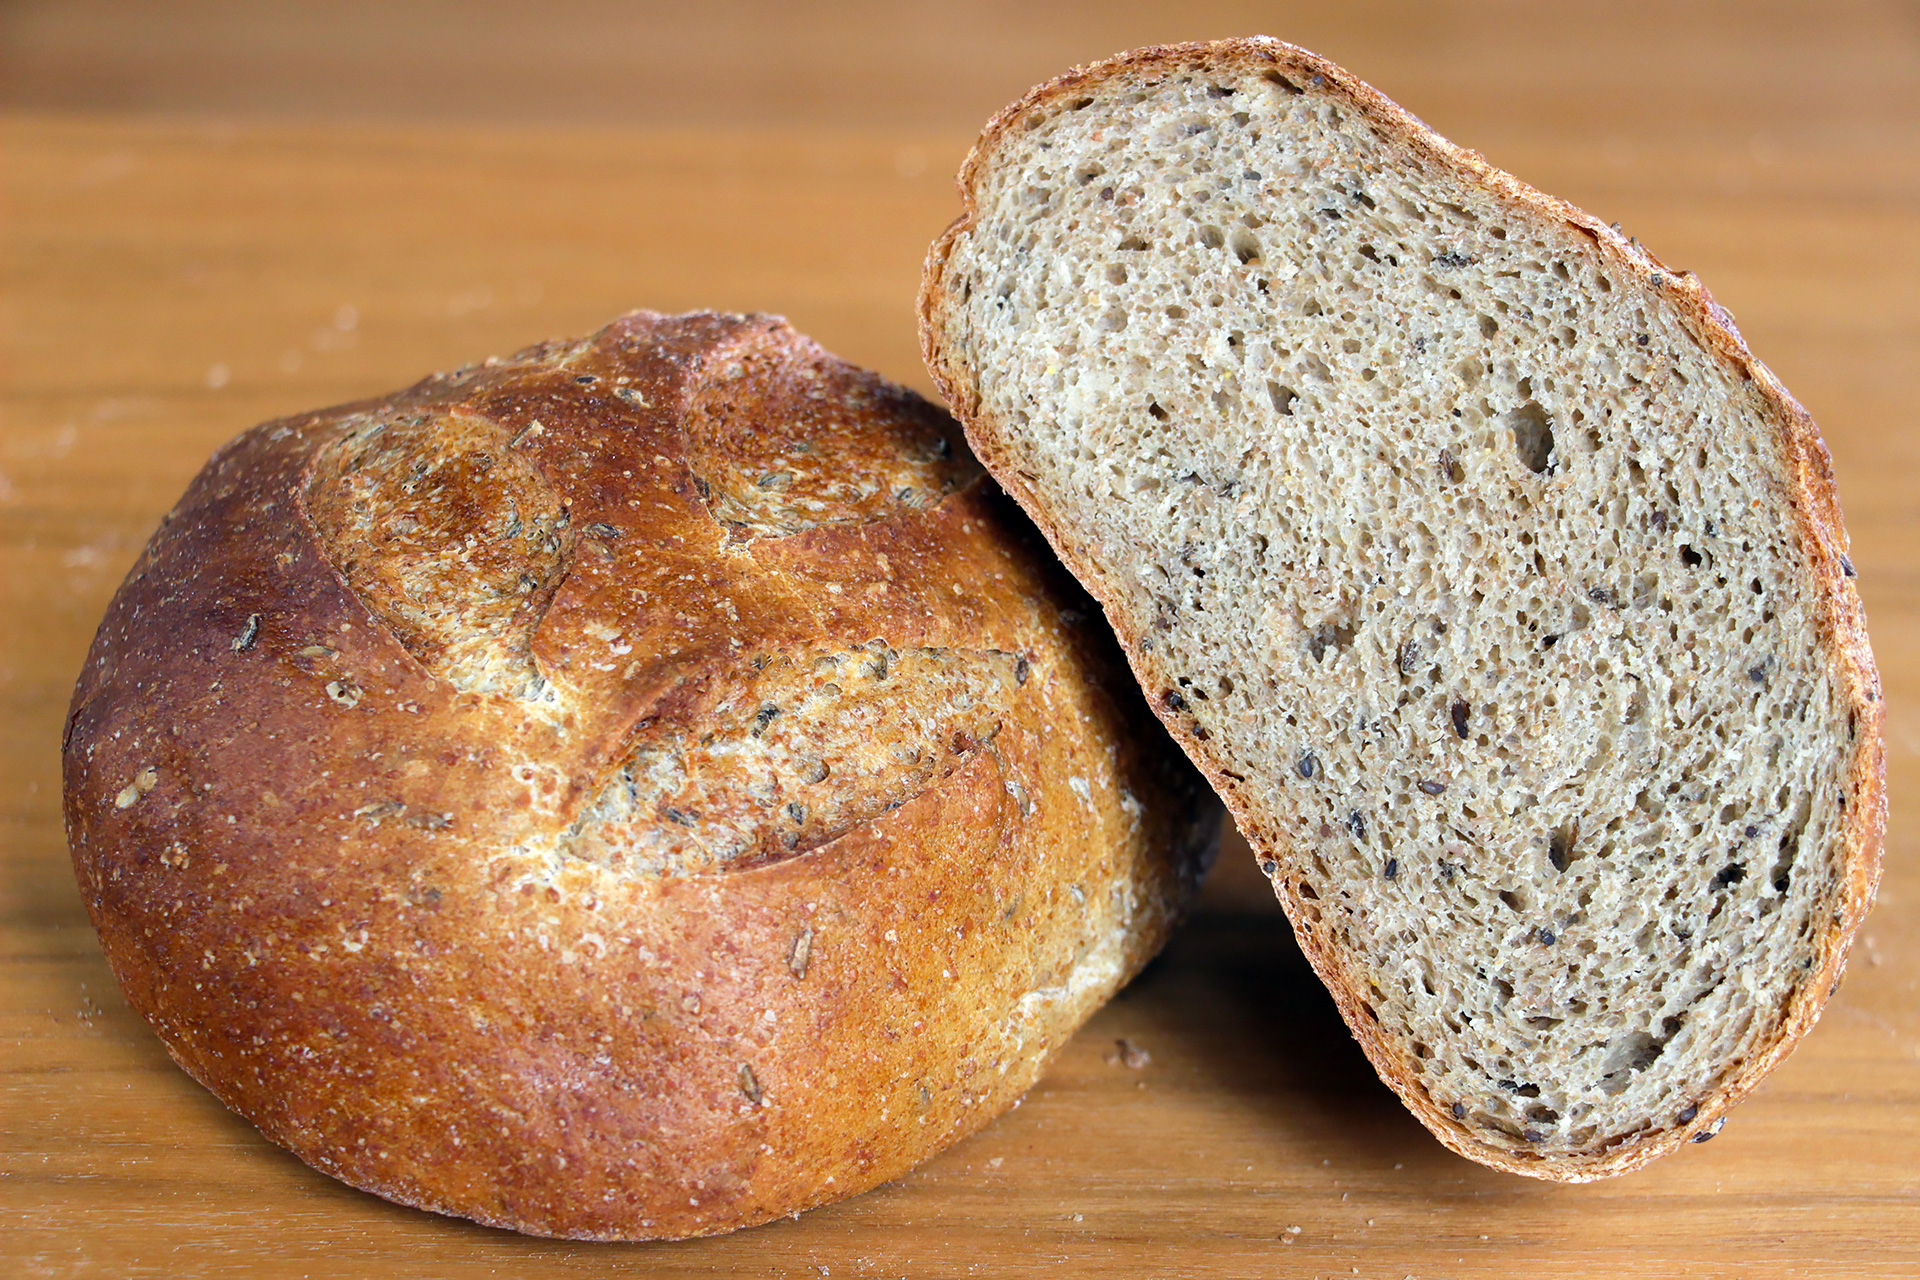 Cheeseboard's Light Rye Bread